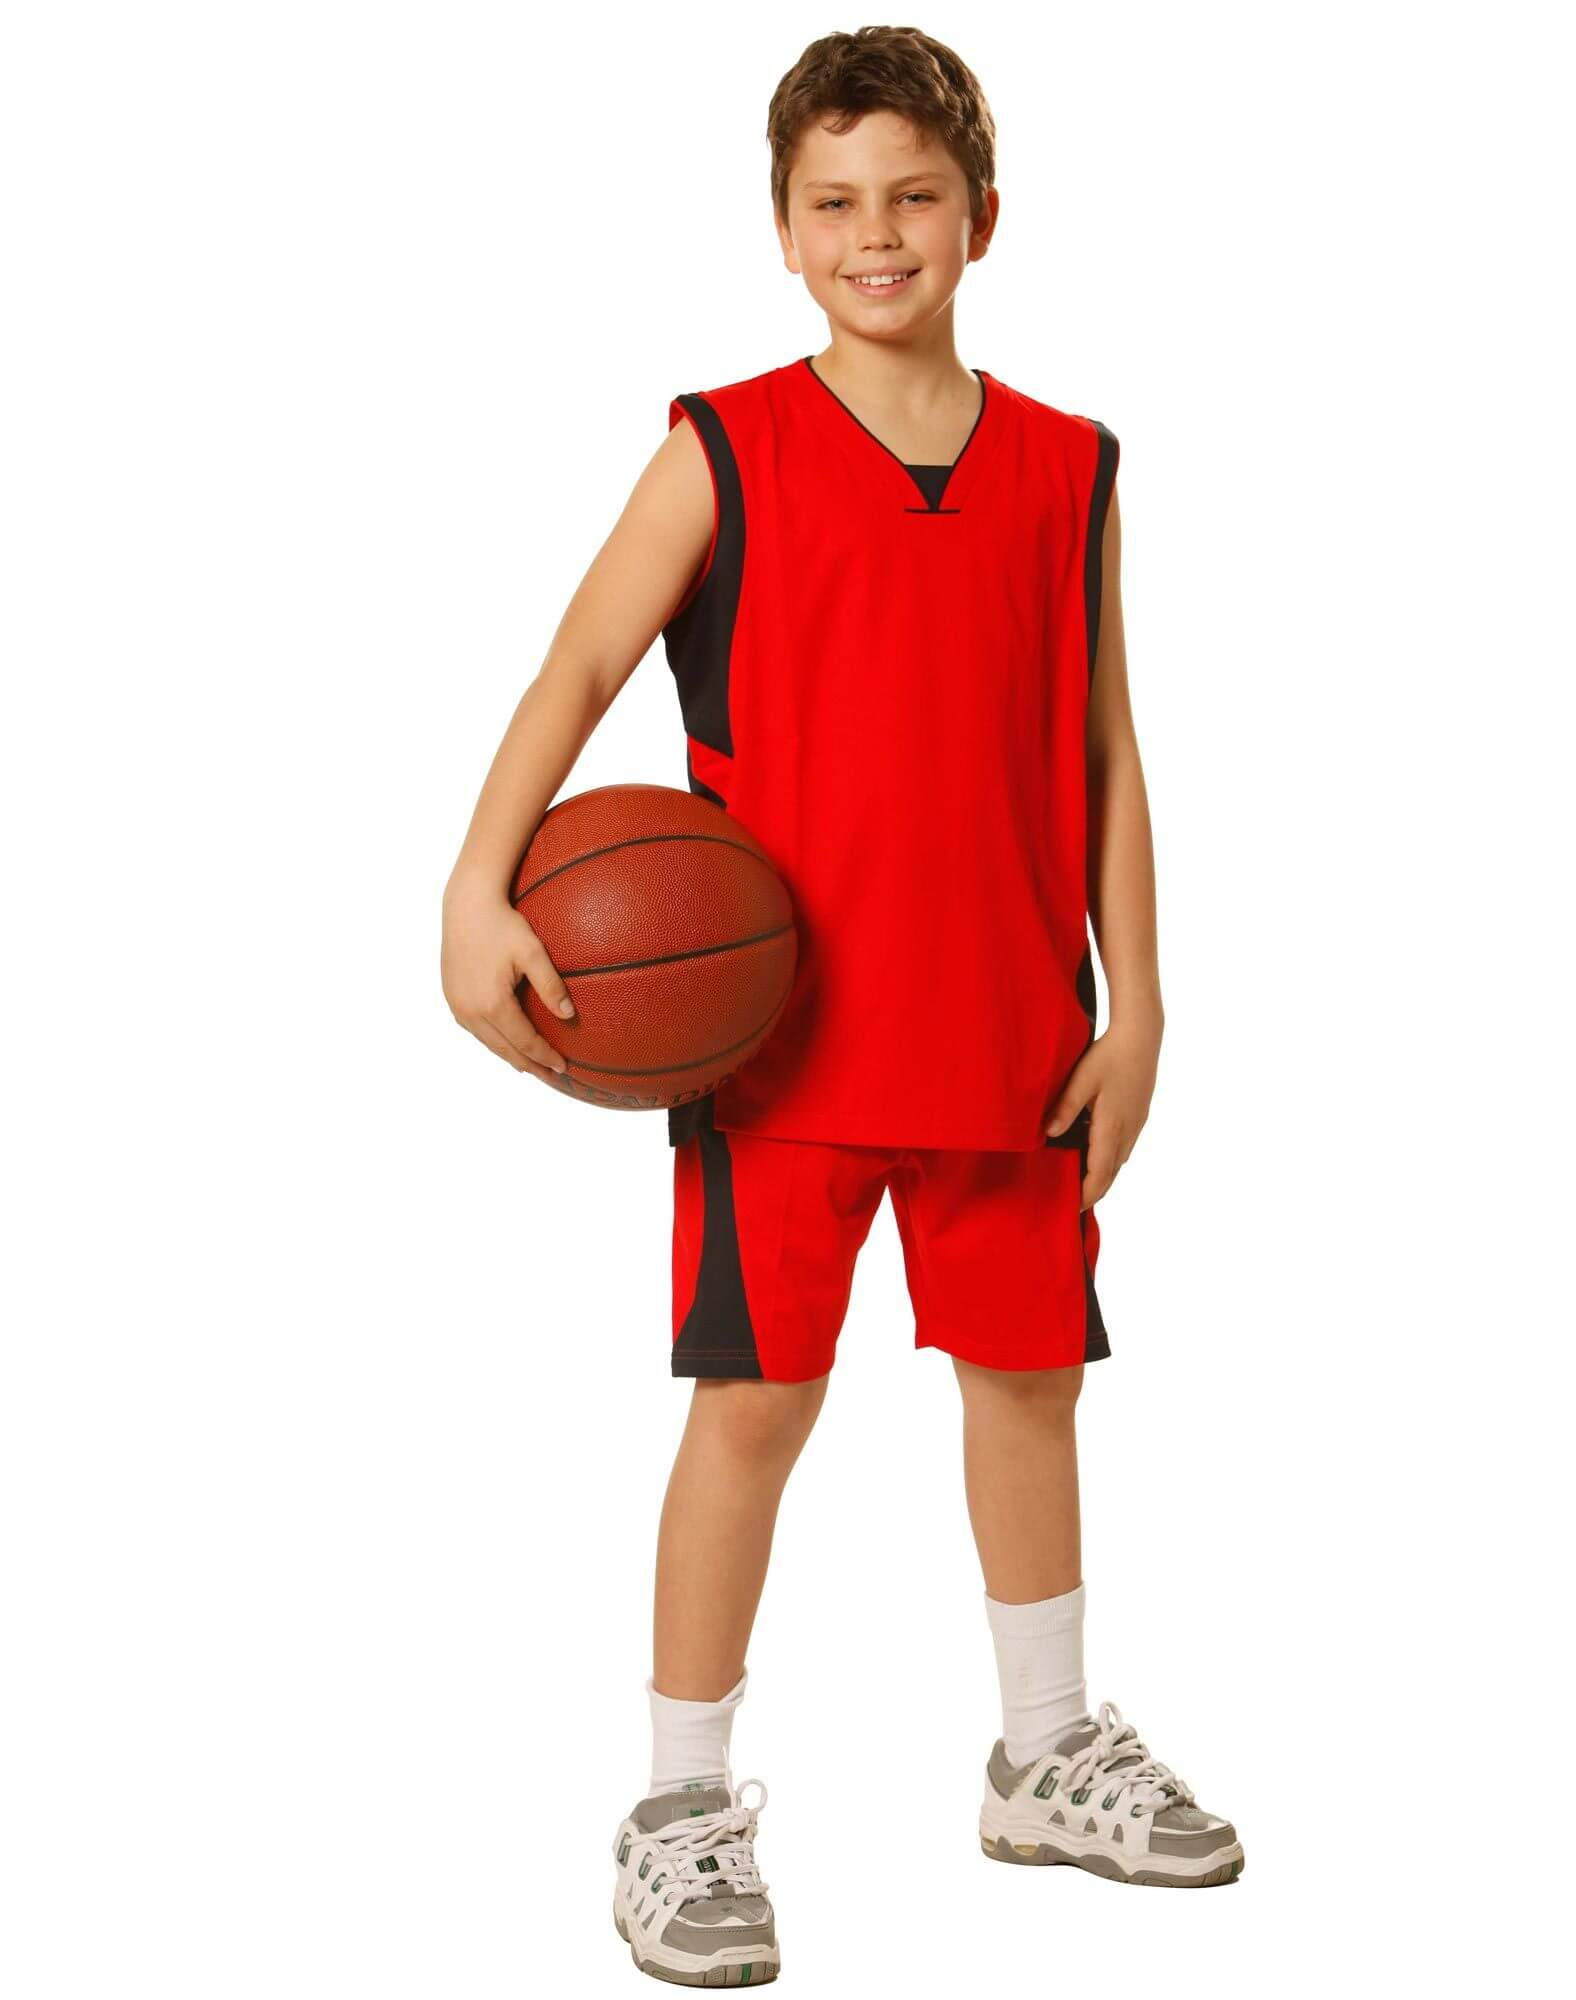 Kids Basketball Jerseys Manufacturers in Tiruchirappalli